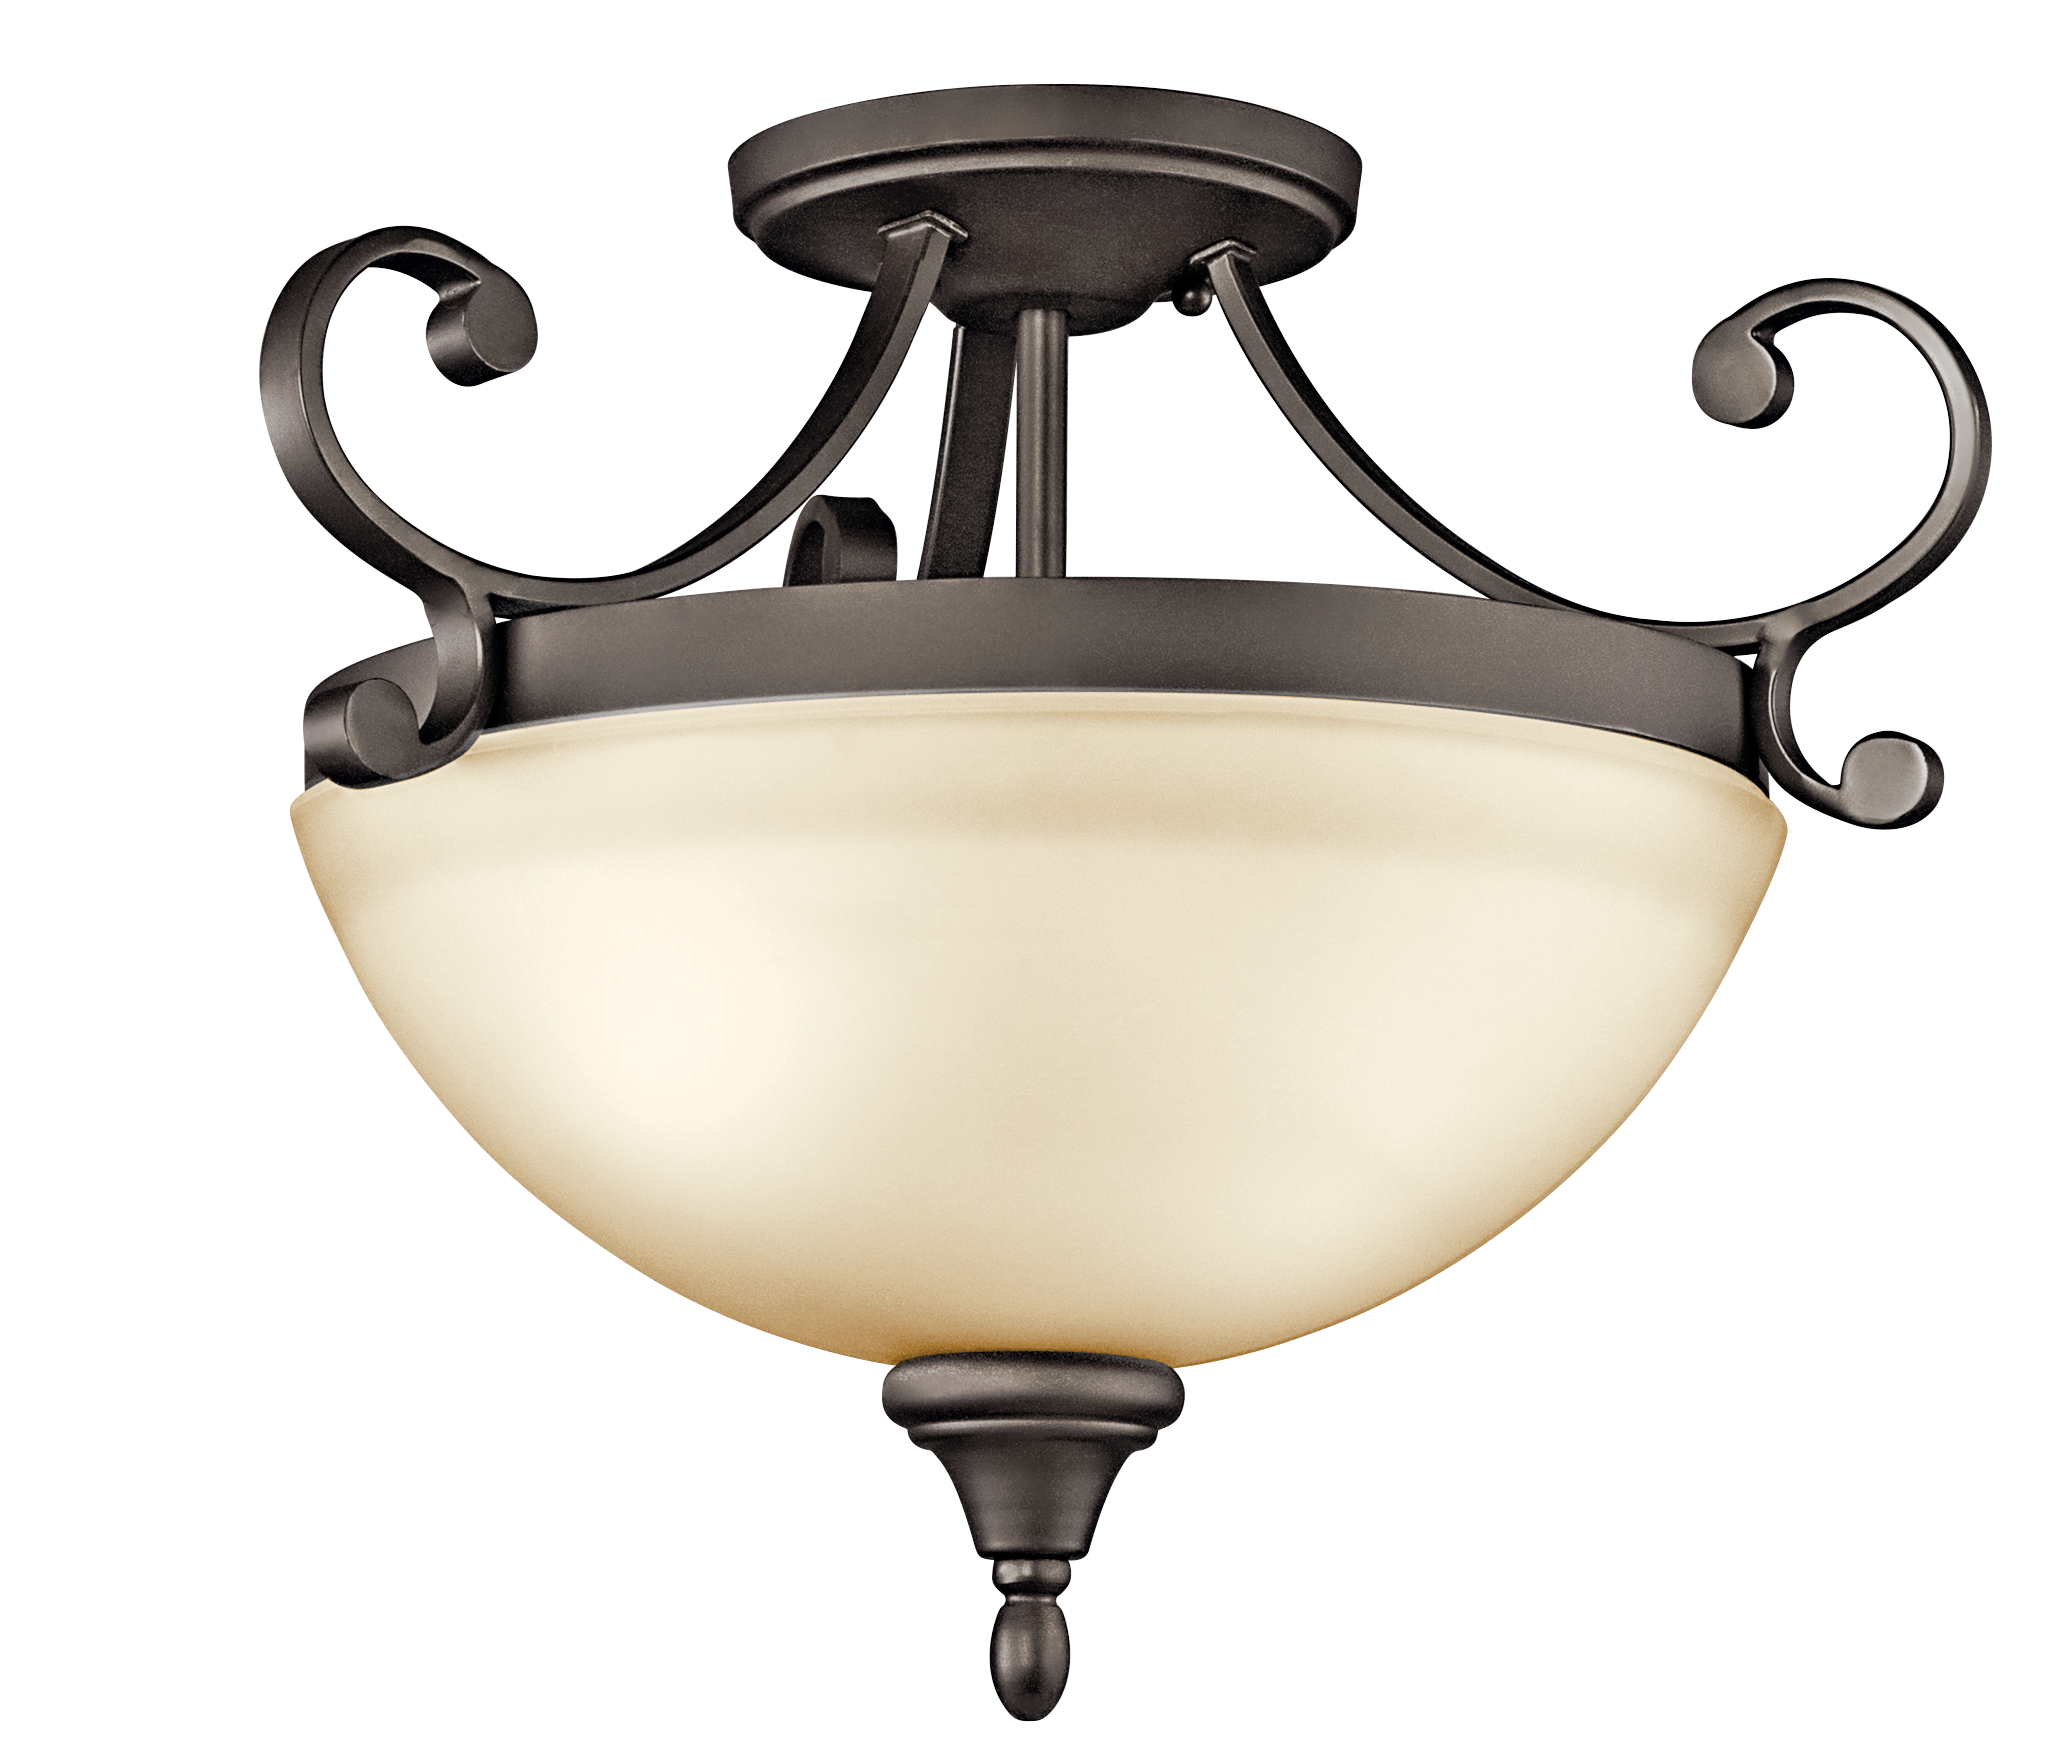 Kichler Monroe LED Flush Light with Light Umber Etched Shade - Olde Bronze (43169OZL16)